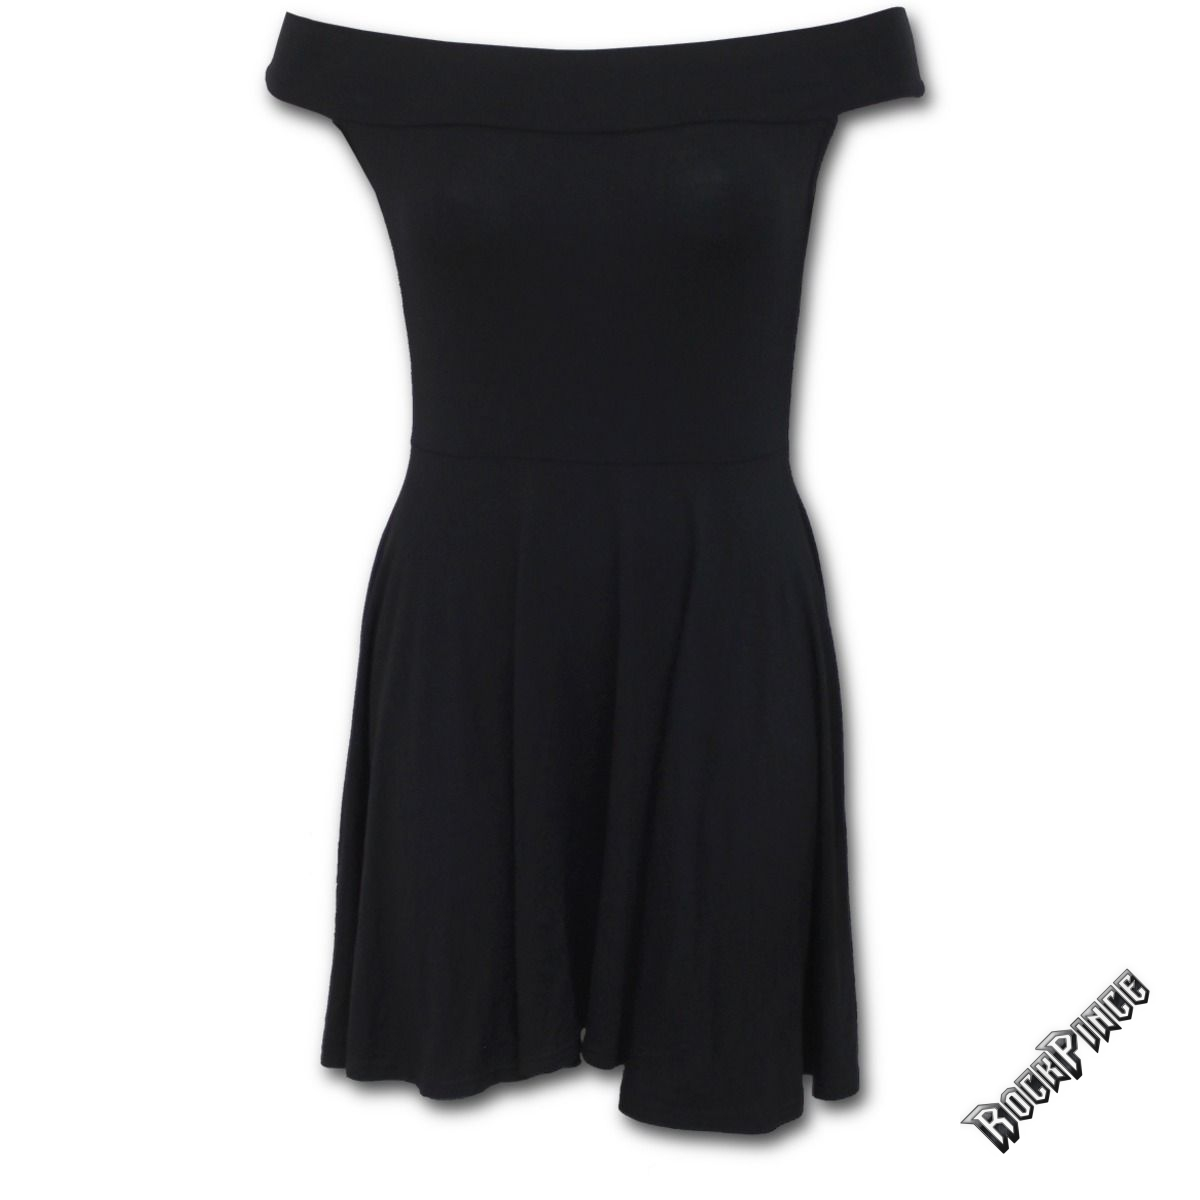 URBAN FASHION - Bardot Neck Skater Dress (Plain) - P004G068